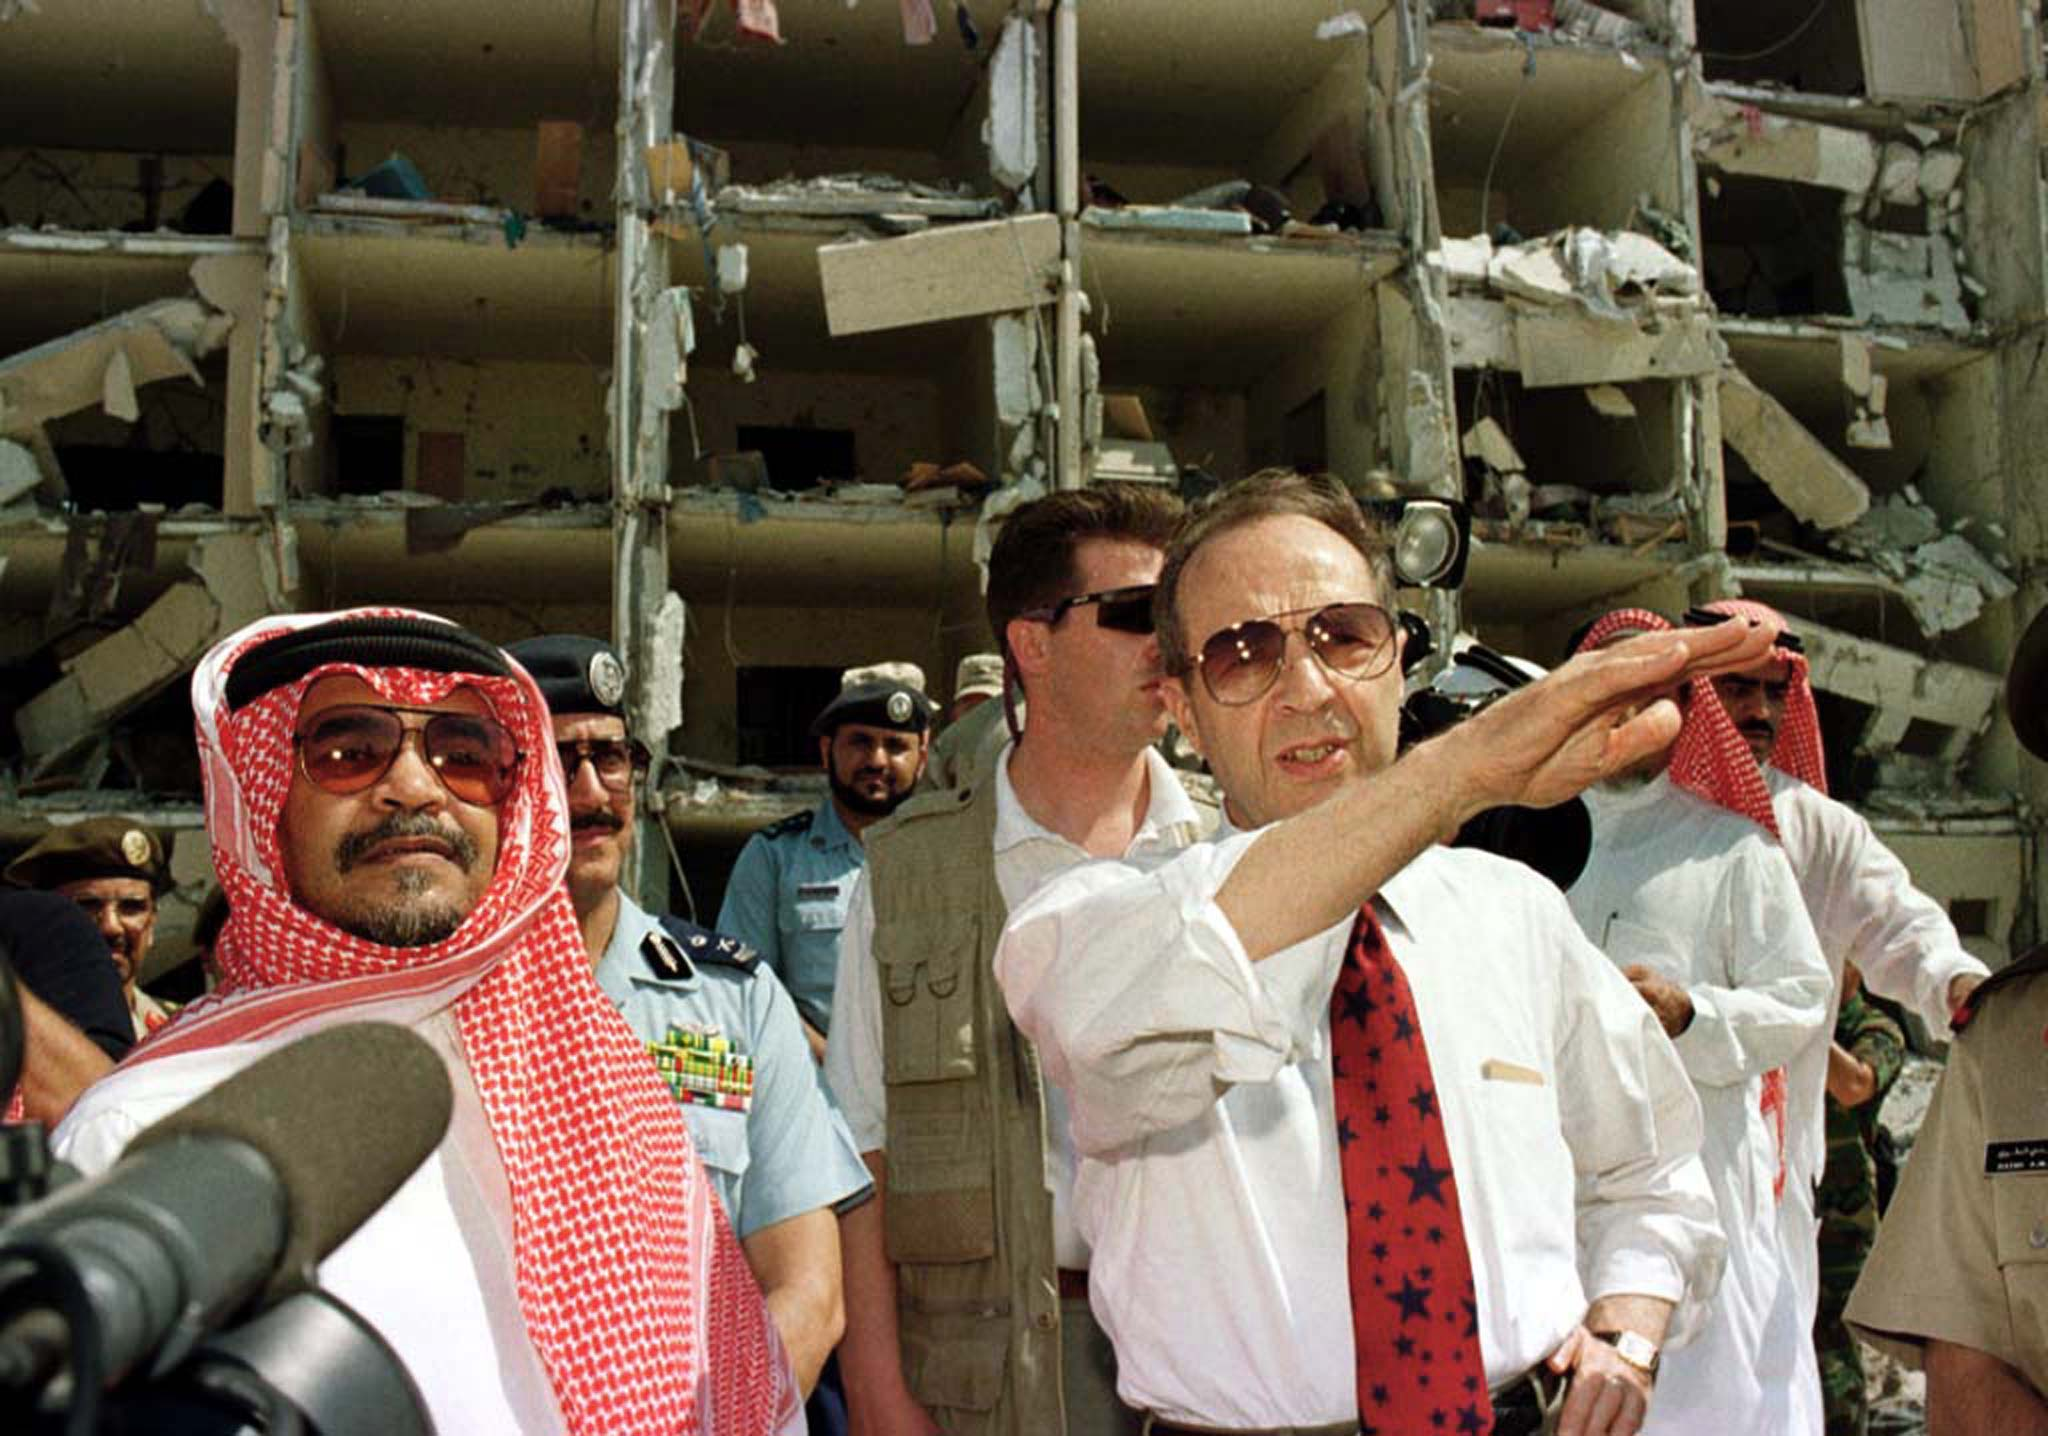 US Secretary of Defence William Perry (R), accompanied by the Saudi Ambassador to the US, Prince Bandar bin Sultan bin Abd al-Aziz Al Saud (L), survey the bomb site outside the heavily damaged apartment at the Khobar Towers housing complex in Dhahran June 29. (Reuters)